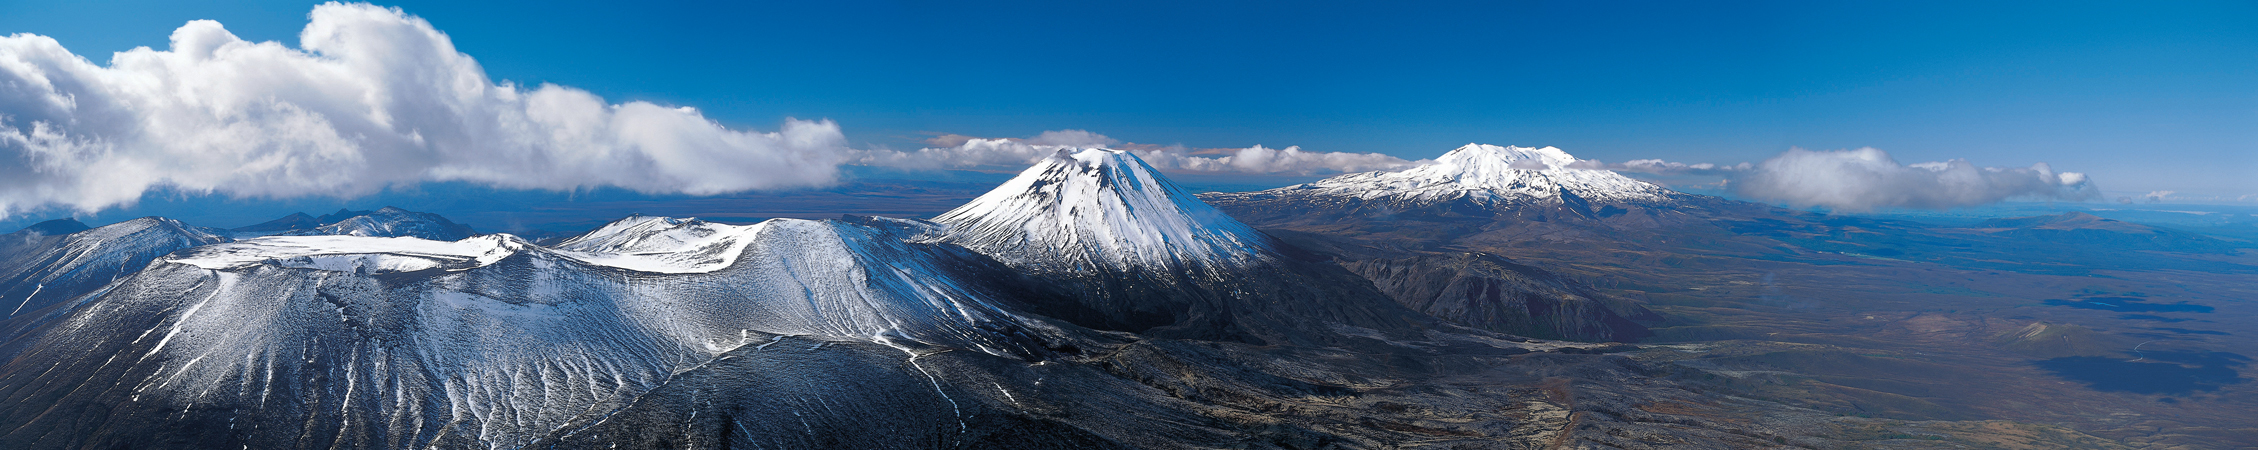 Tongariro National Park panorama